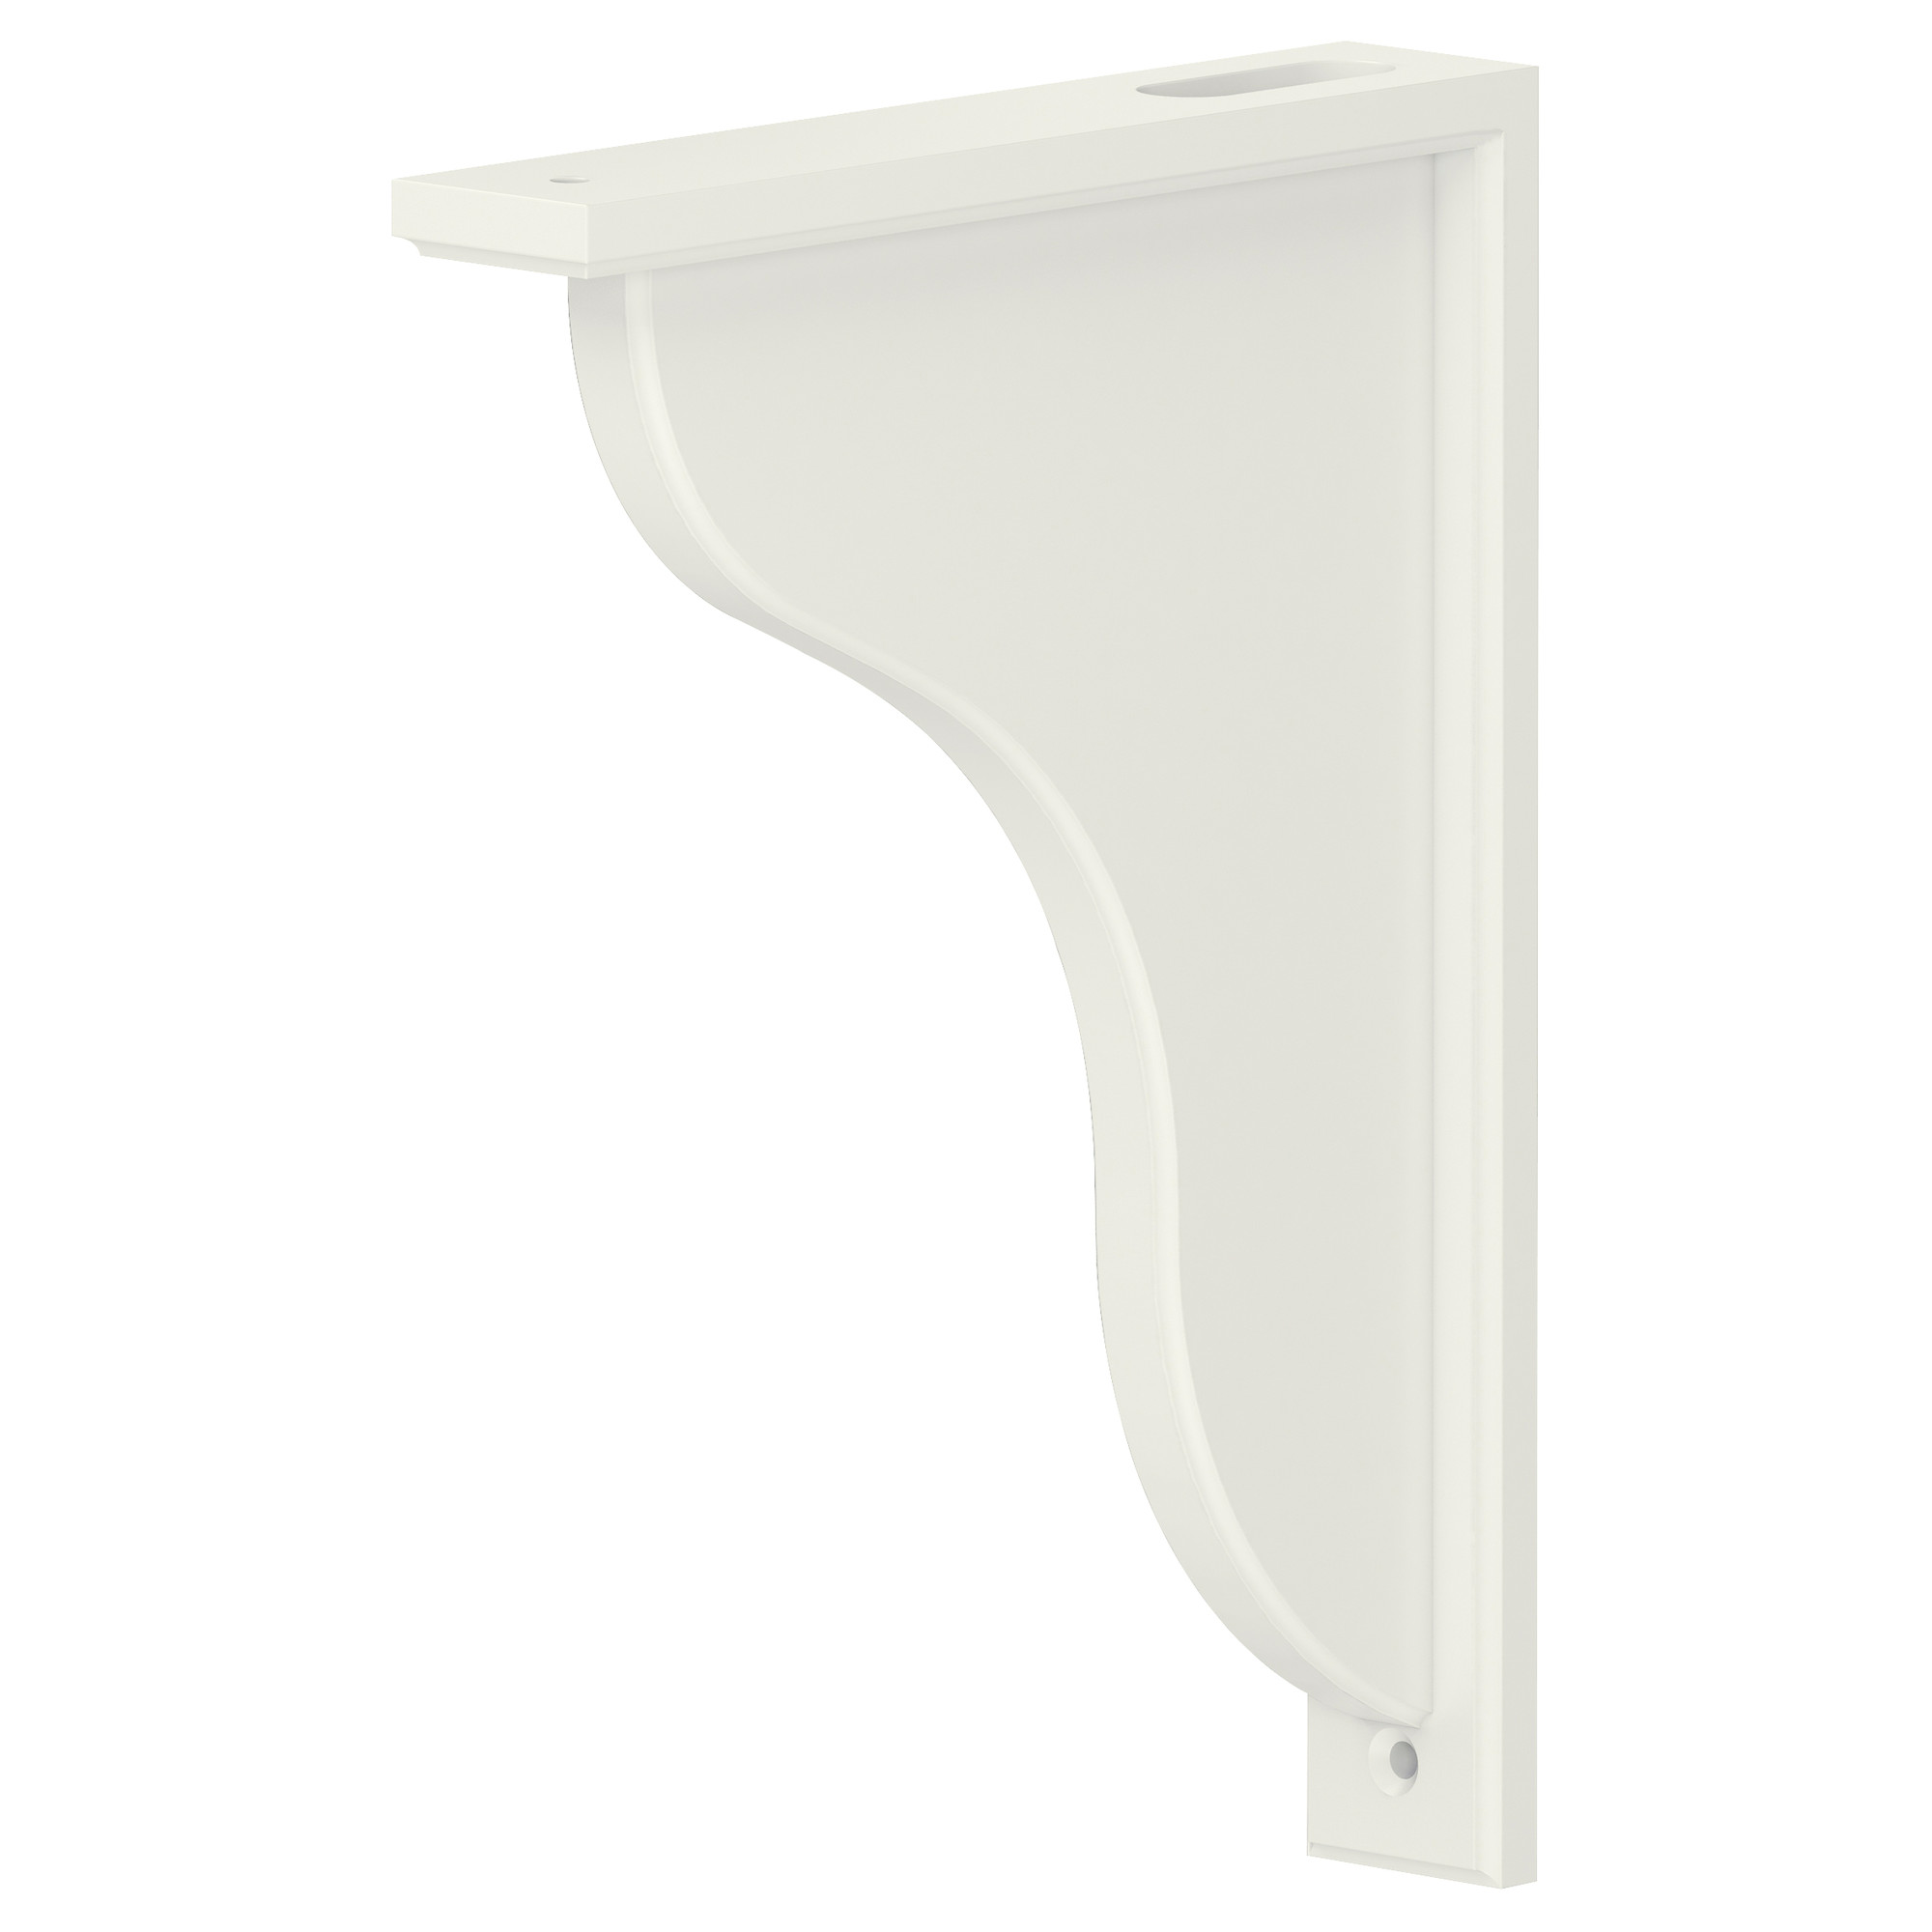 Stunning EKBY HENSVIK Bracket - IKEA white wall shelves with brackets